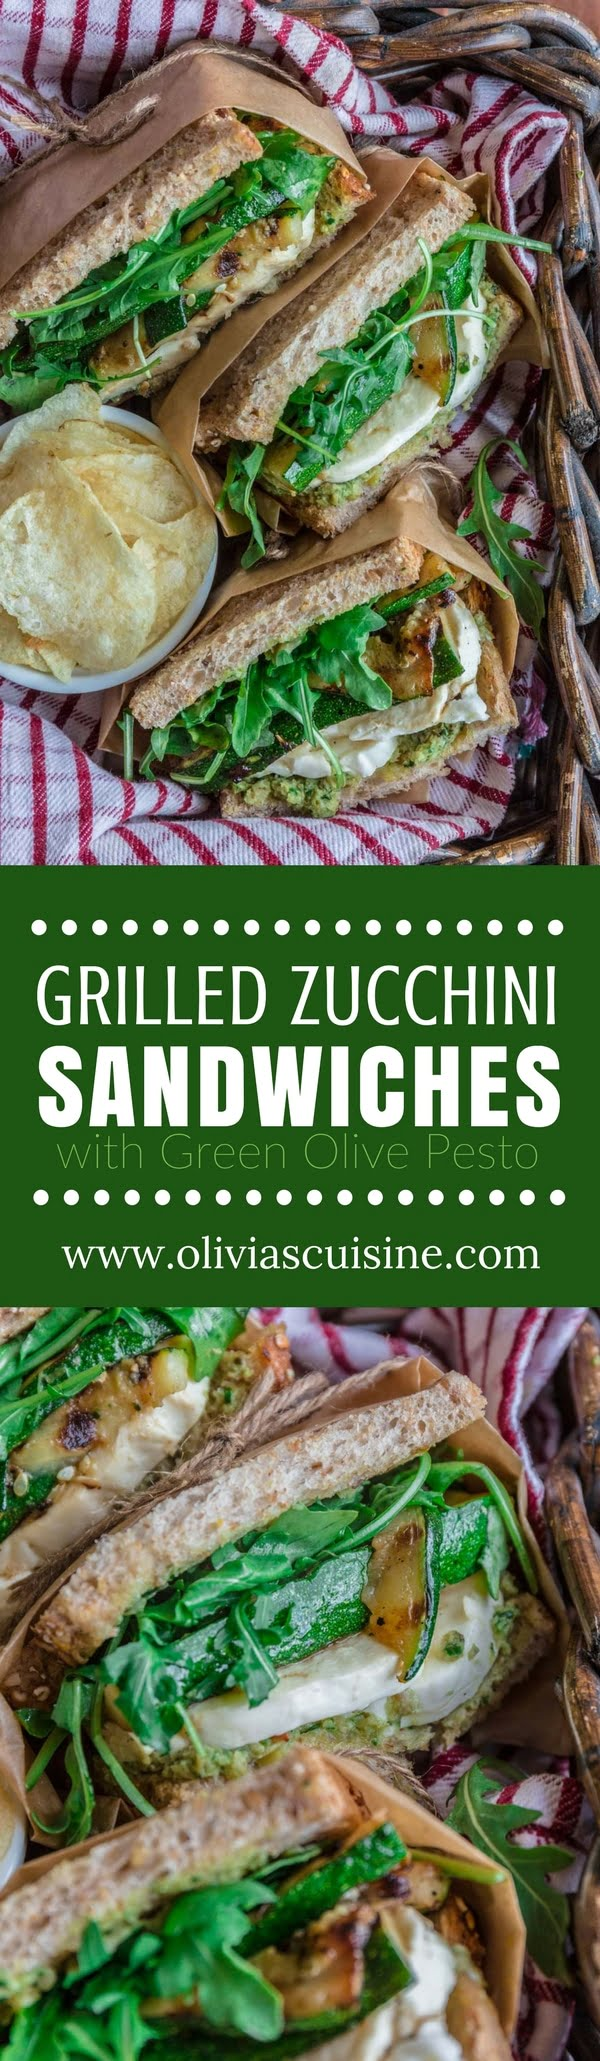 Grilled Zucchini Sandwich with Green Olive Pesto | www.oliviascuisine.com | This delicious Grilled Zucchini Sandwich will get you excited about picnic weather. Packed with a lot of flavor, thanks to a homemade green olive pesto, fresh mozzarella, arugula and, the star of the show, grilled zucchini. Lip smacking good and guilt-free? What more could you possibly ask for? (Recipe and food photography by @oliviascuisine)